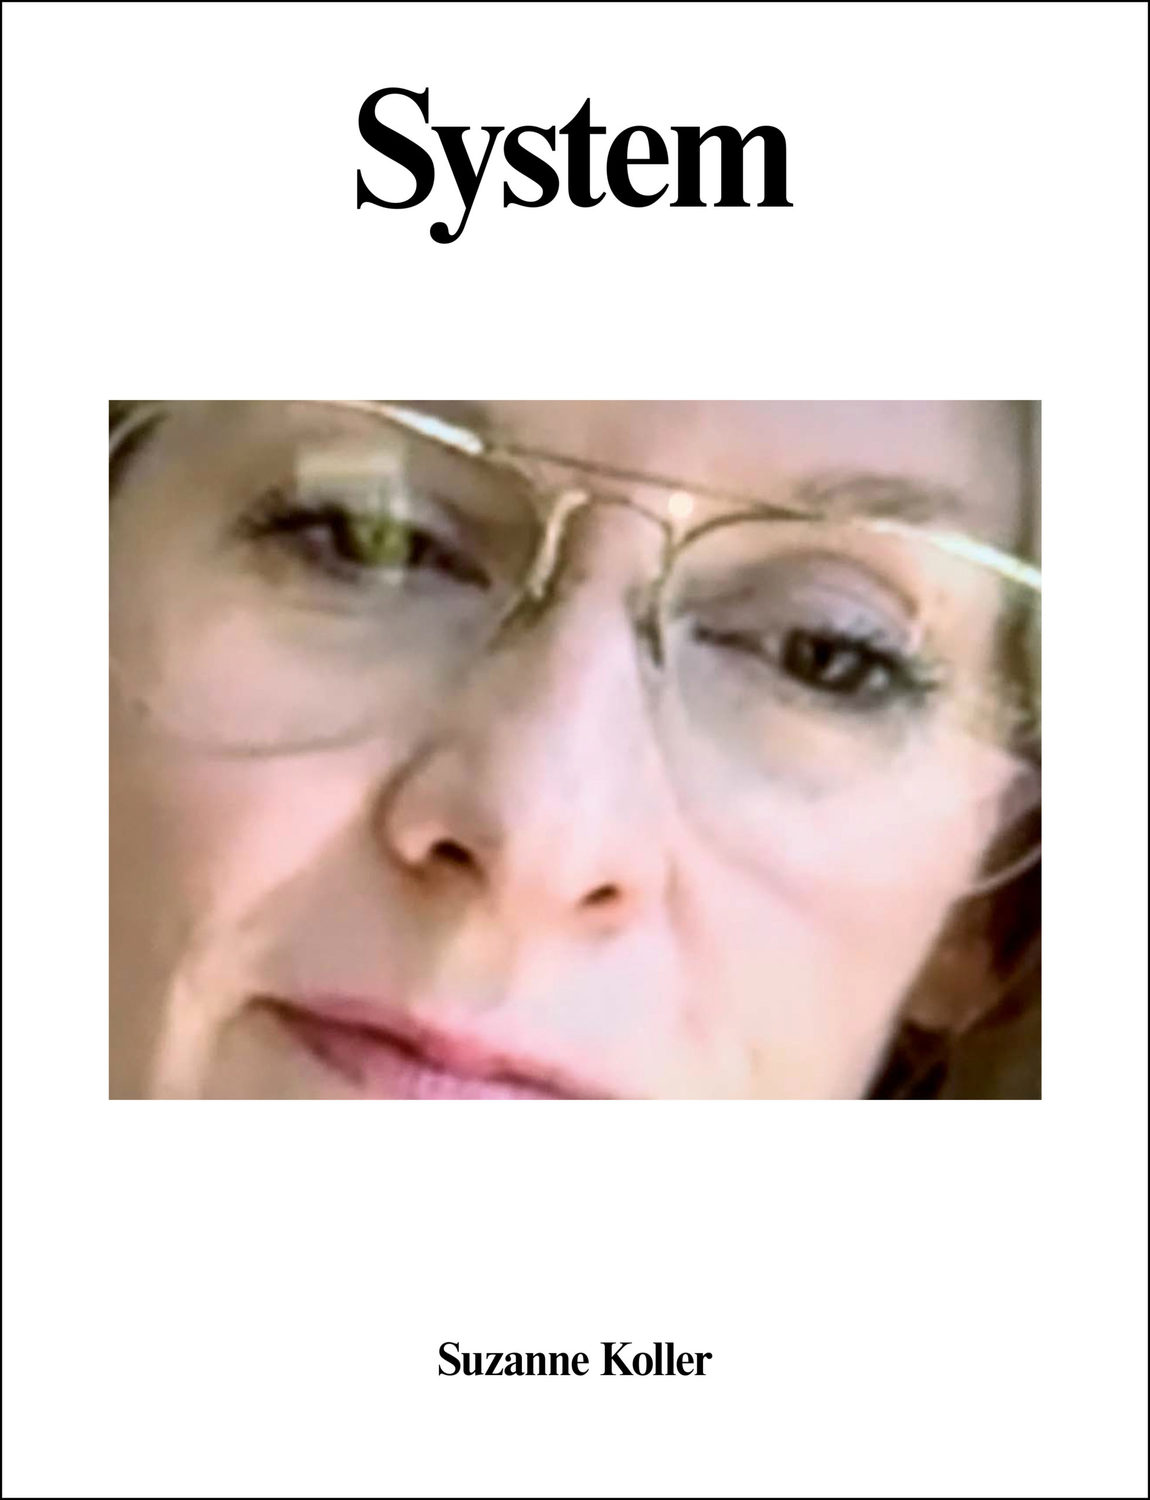 SYSTEM15-COVER-Suzanne-Koller-scaled.jpg